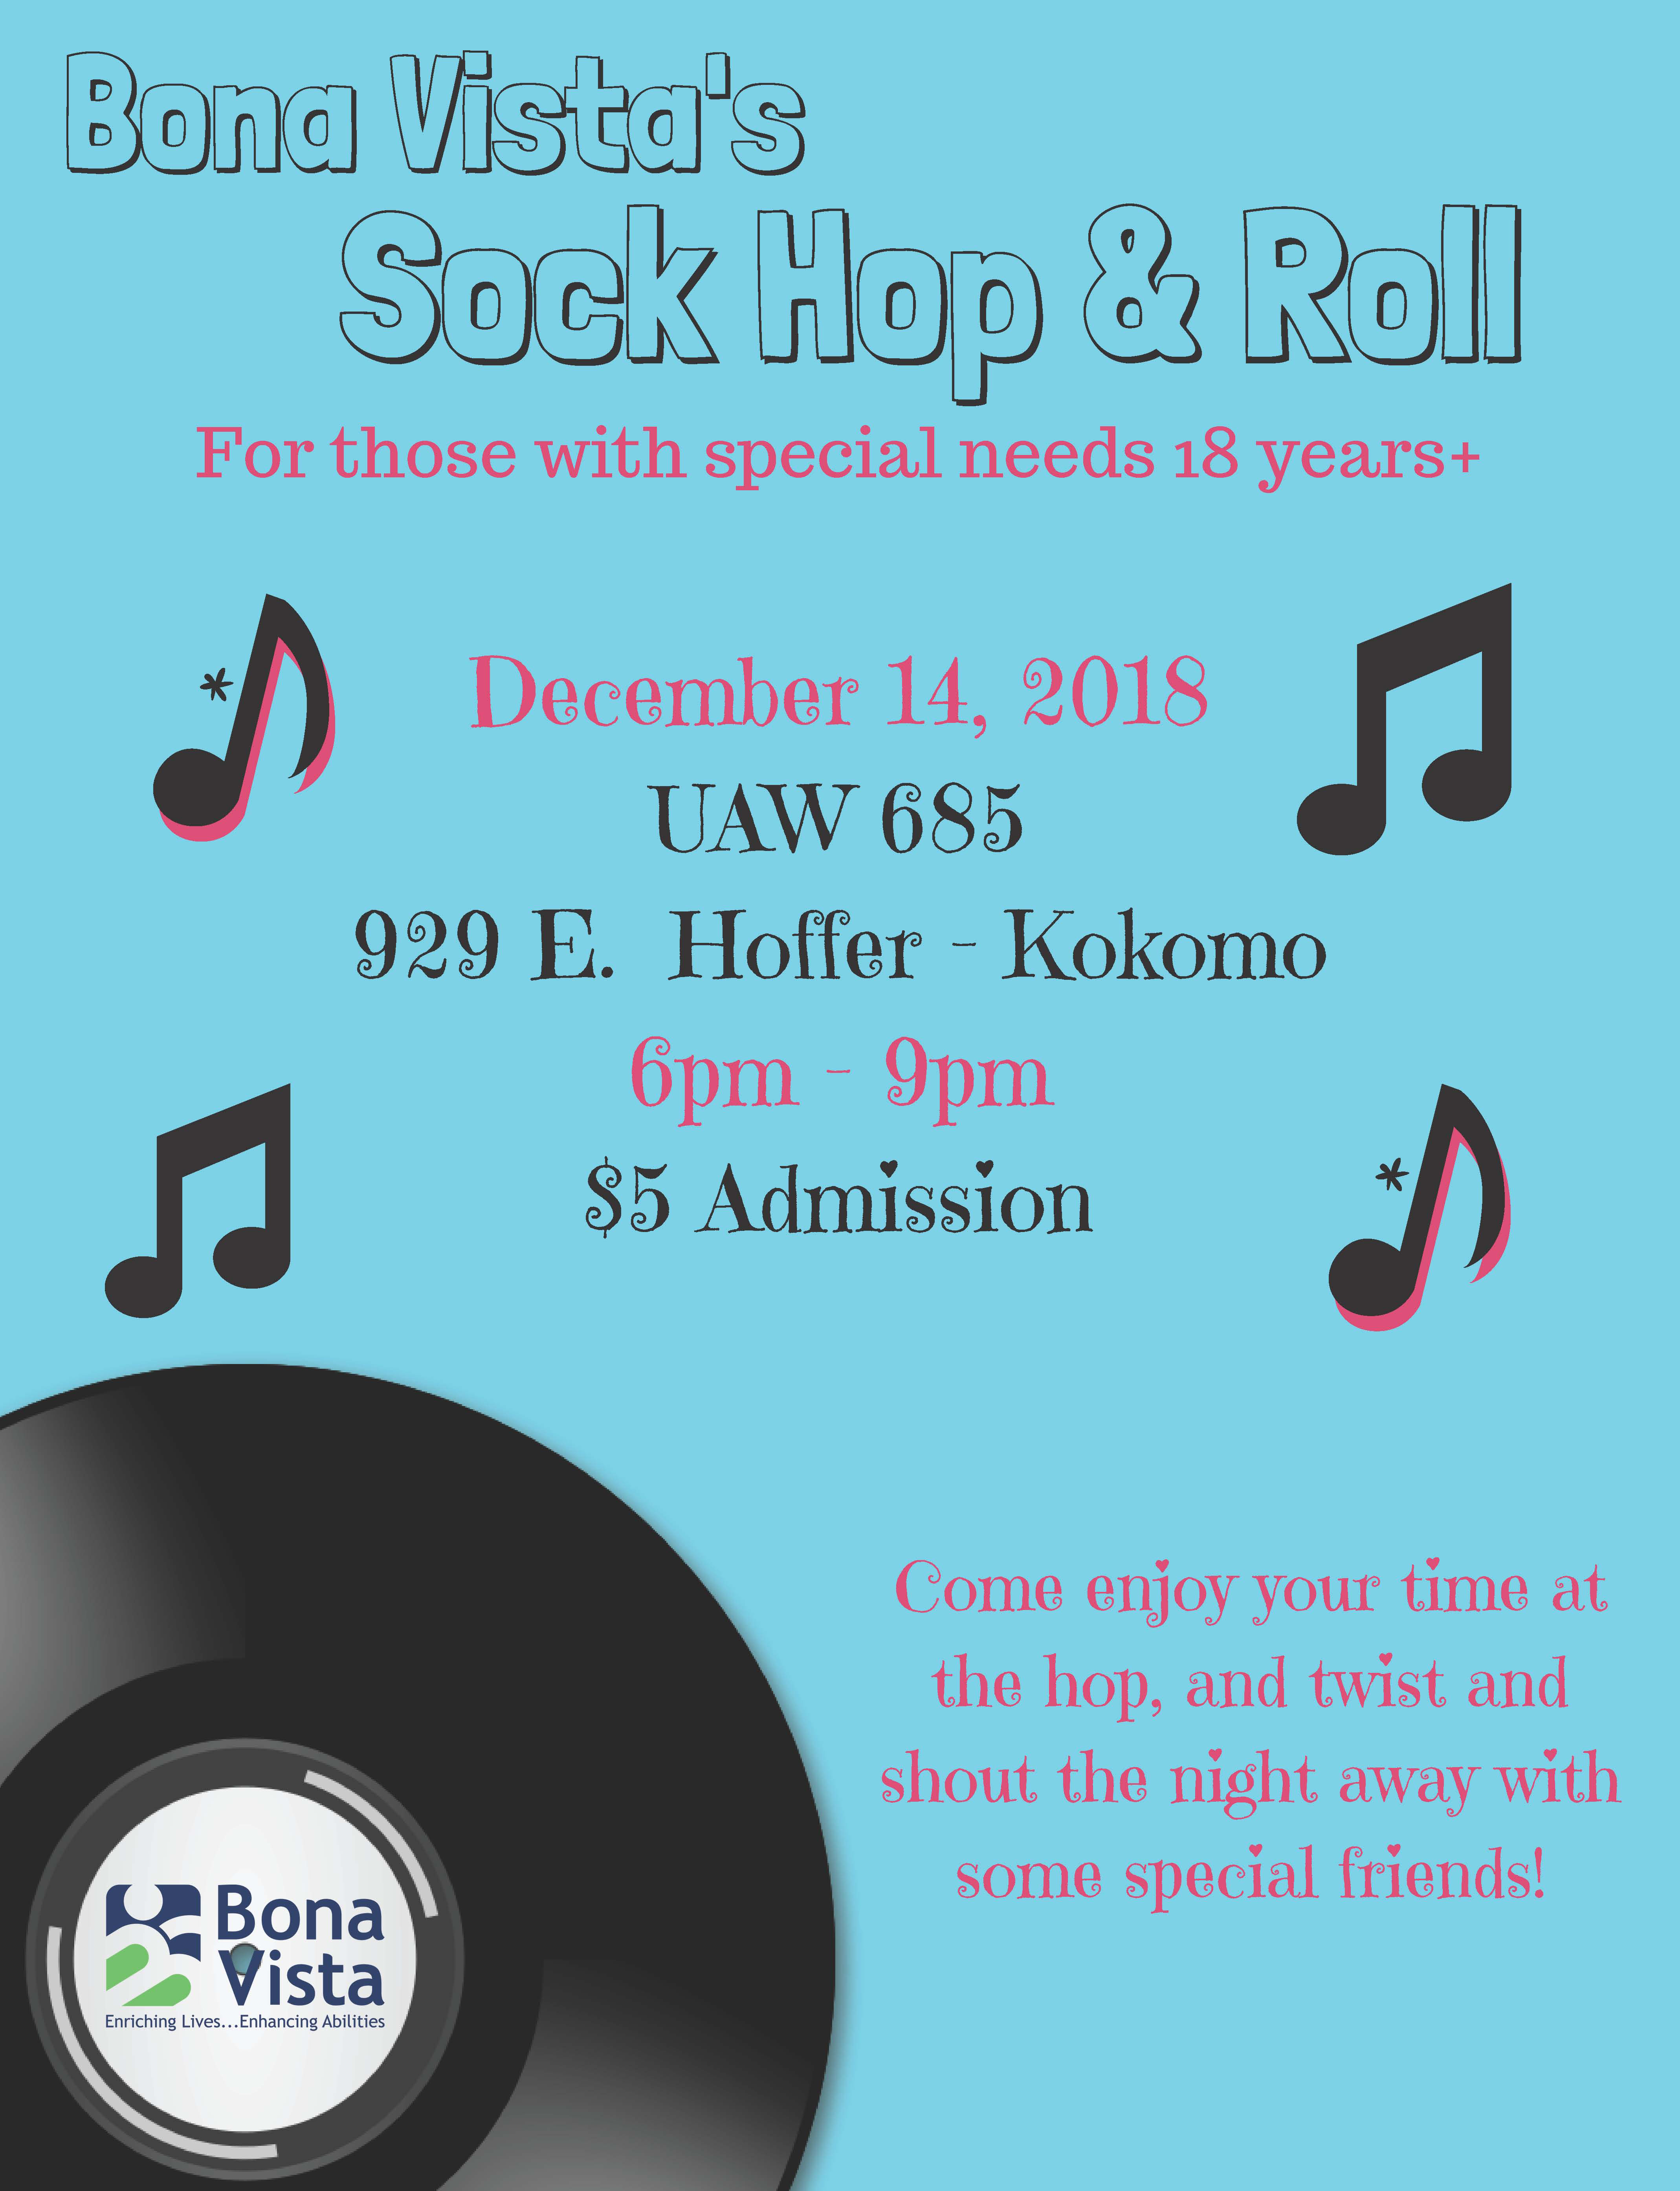 ona Vista's Sock Hop & Roll